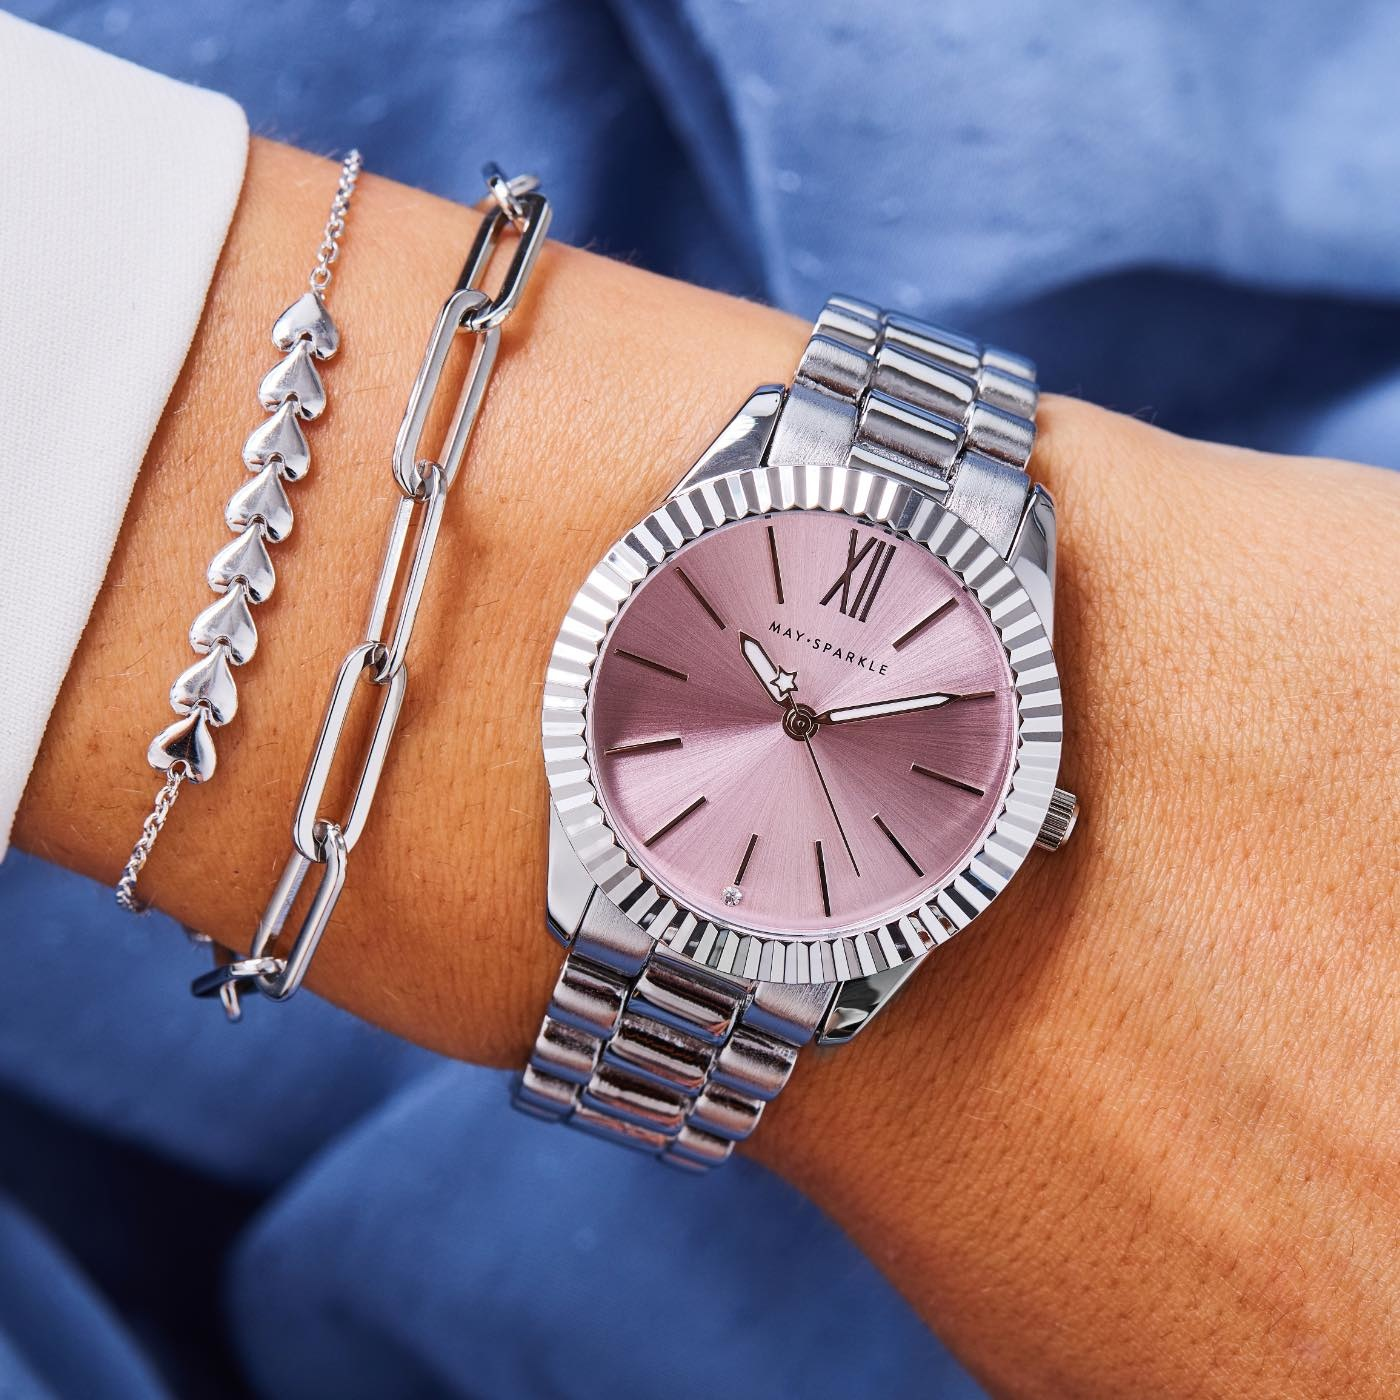 May Sparkle Luxurious Life Senna ladies watch silver colored / pink